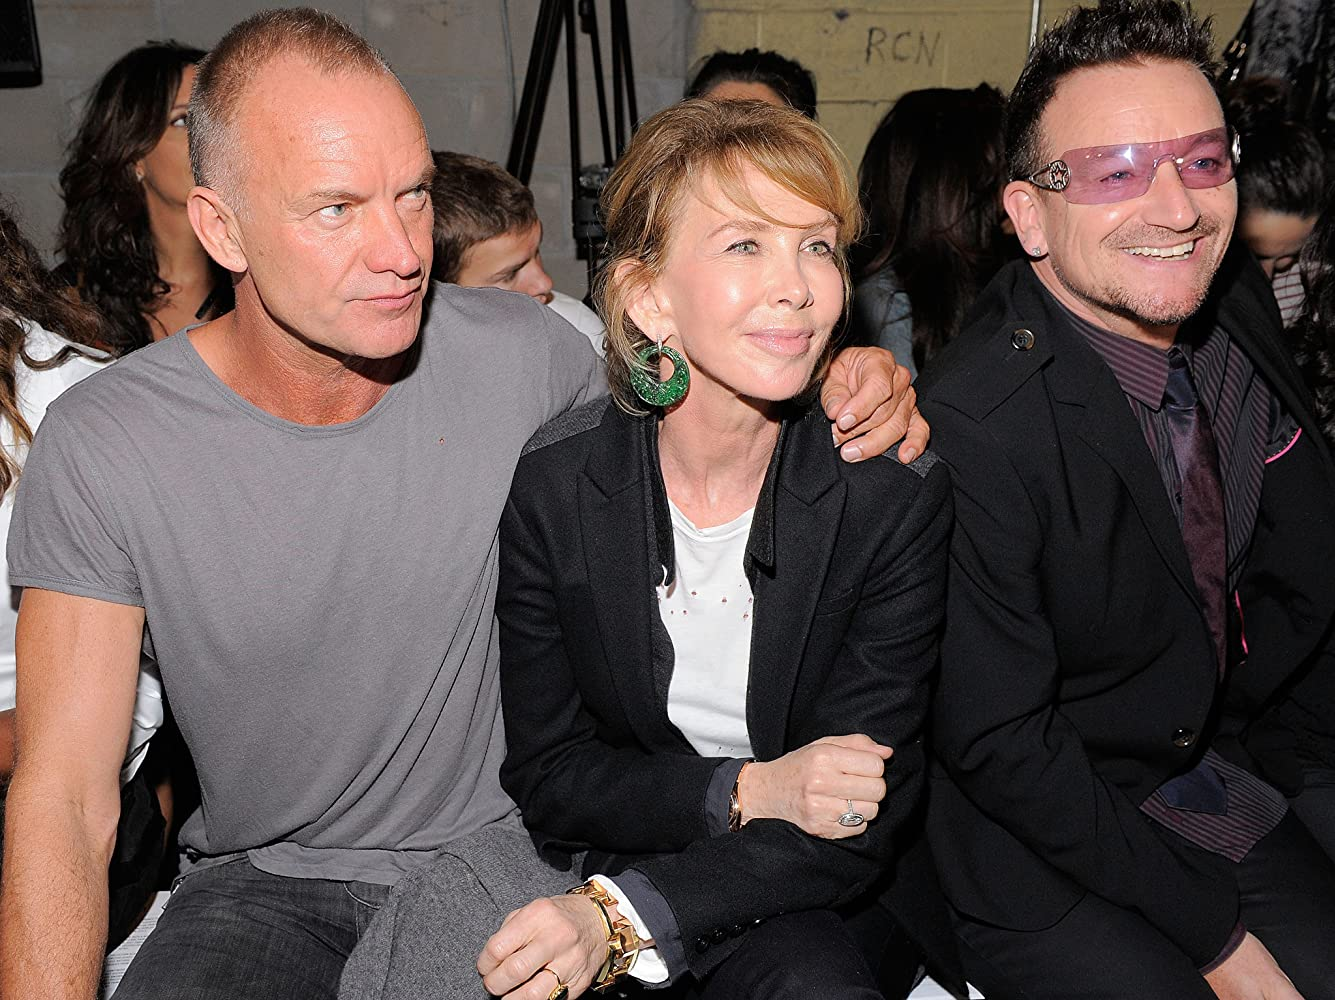 Forum on this topic: Harland Williams, trudie-styler/